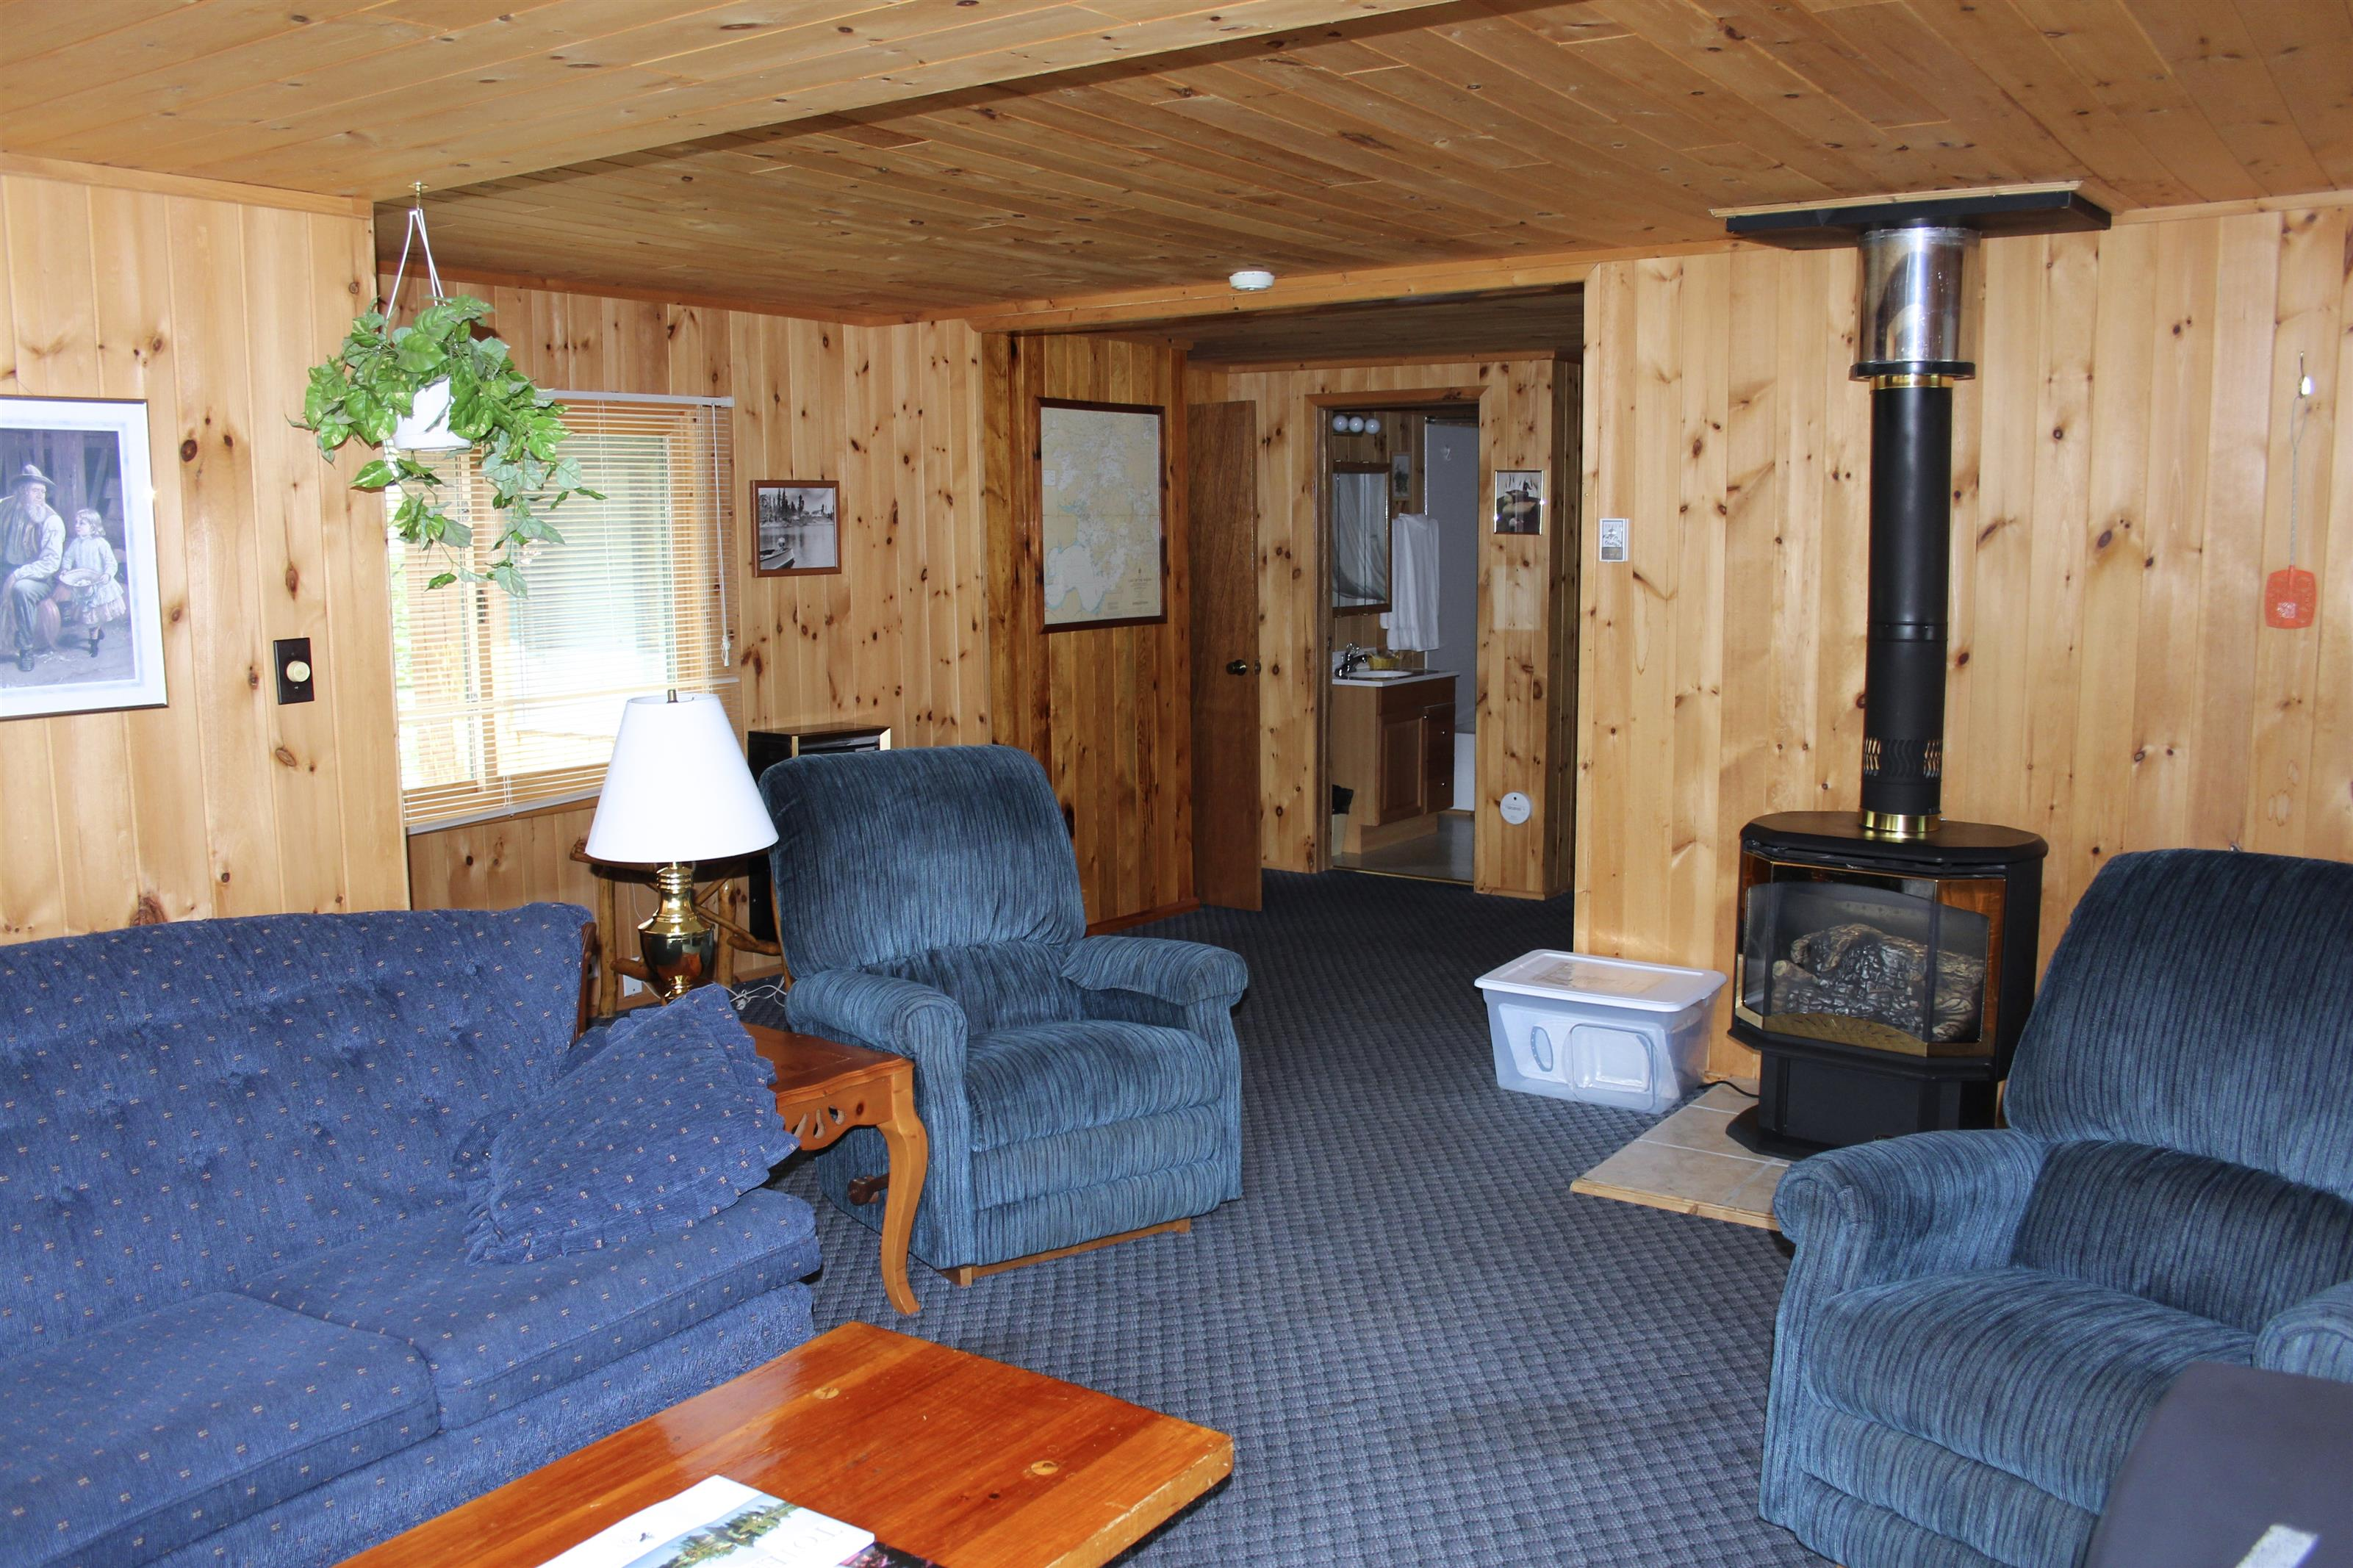 inside one of the cabins with a chair, couch and a table